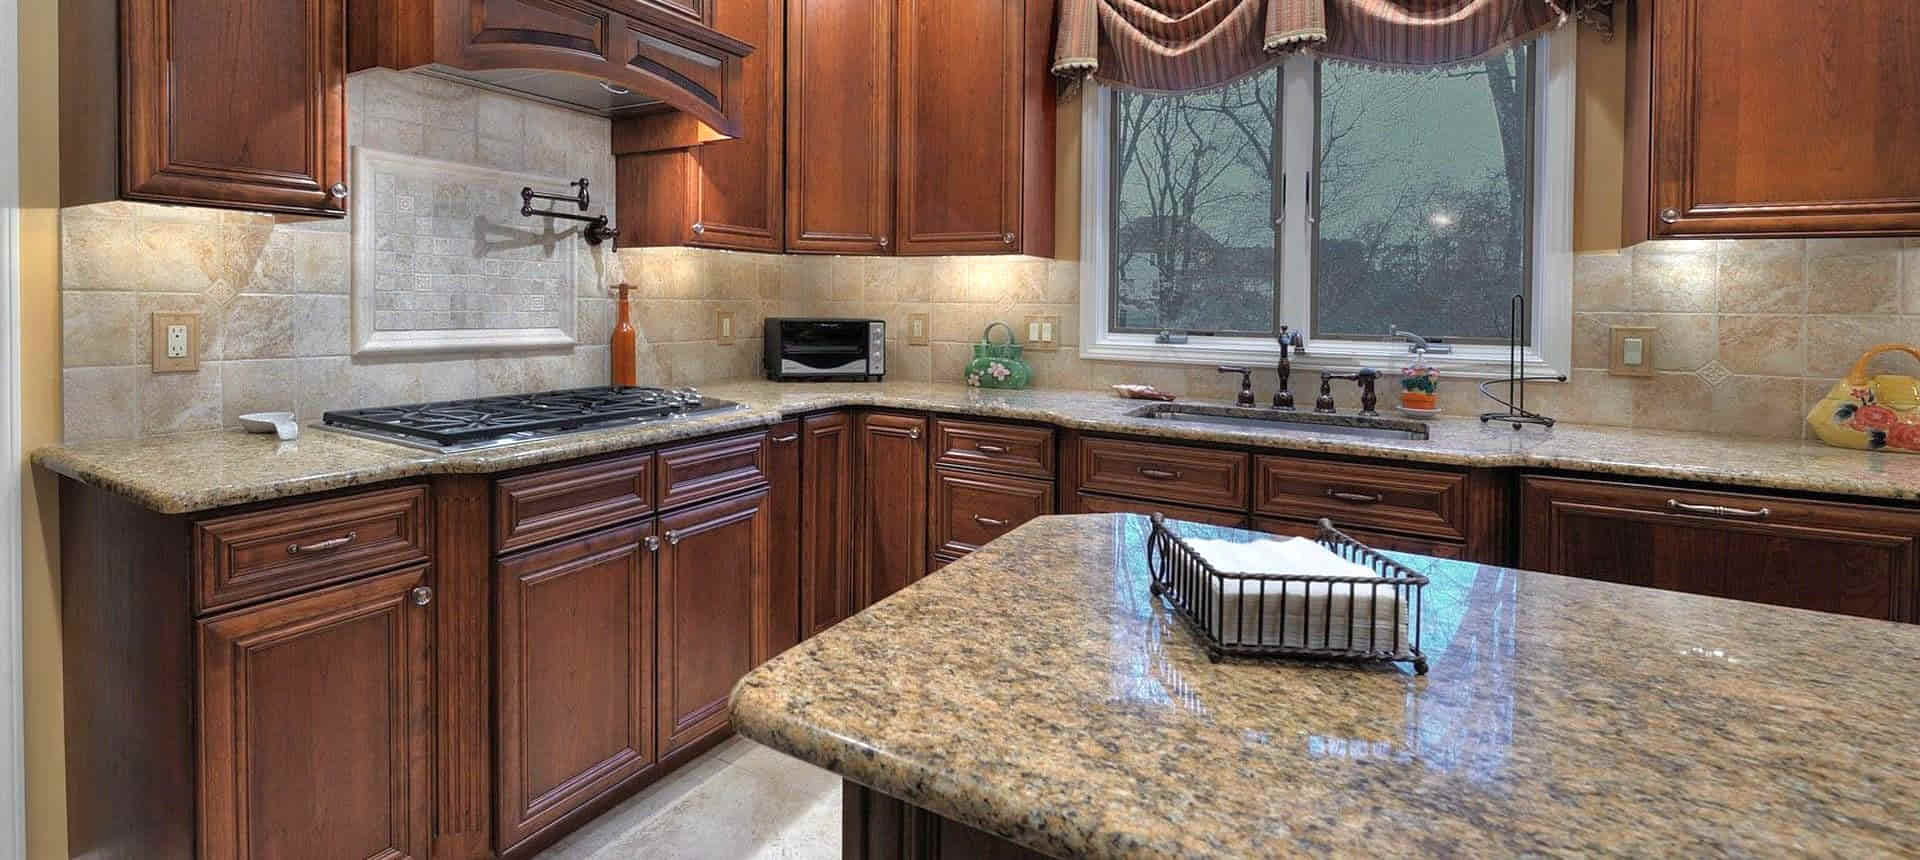 Dl Stone Design A Granite Marble And Natural Fabrication Installation Company